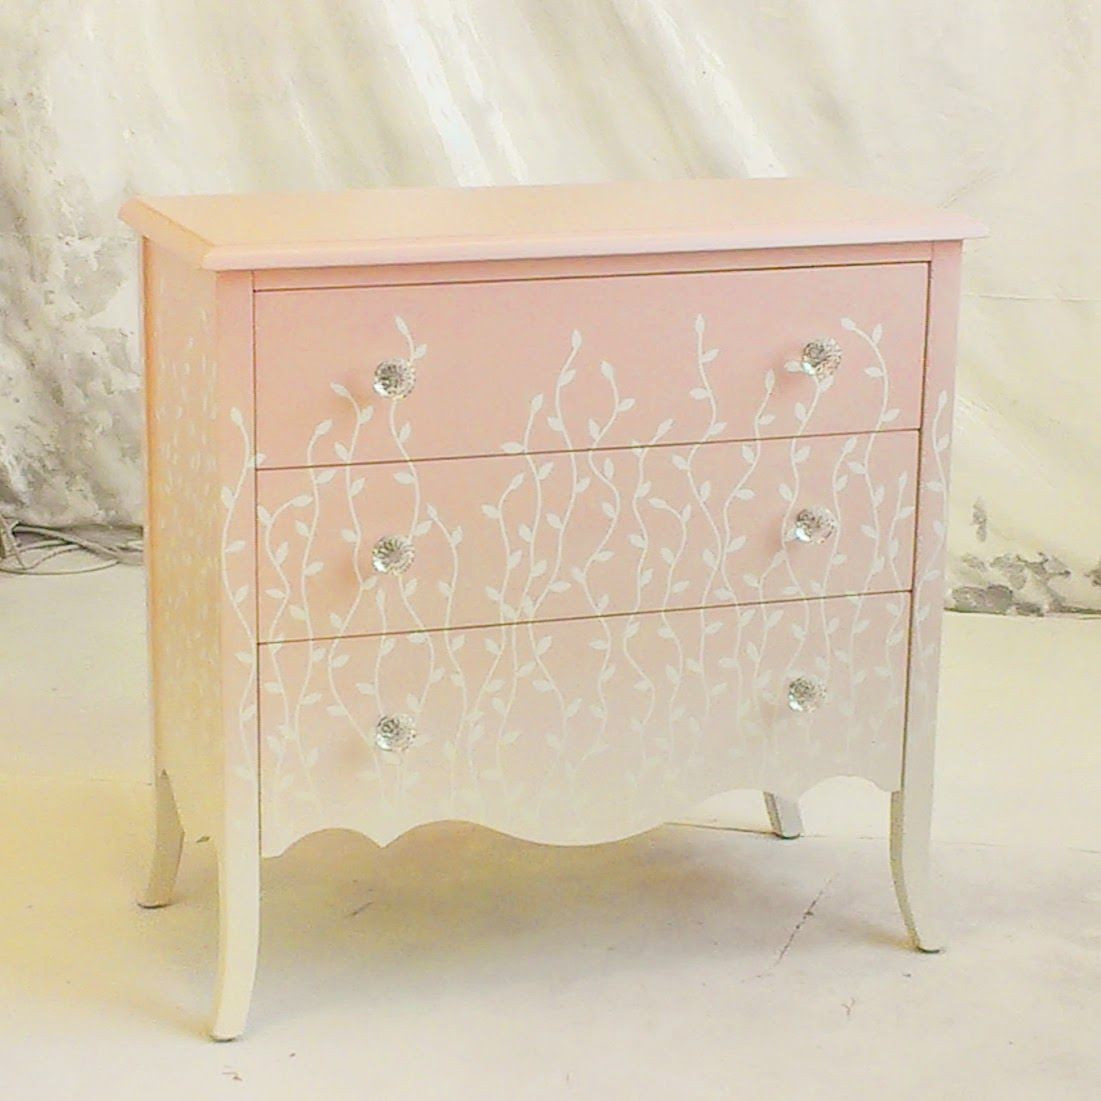 Vintage Furniture Sydney Sydney Barton Painted Furniture Pink And White Ombre